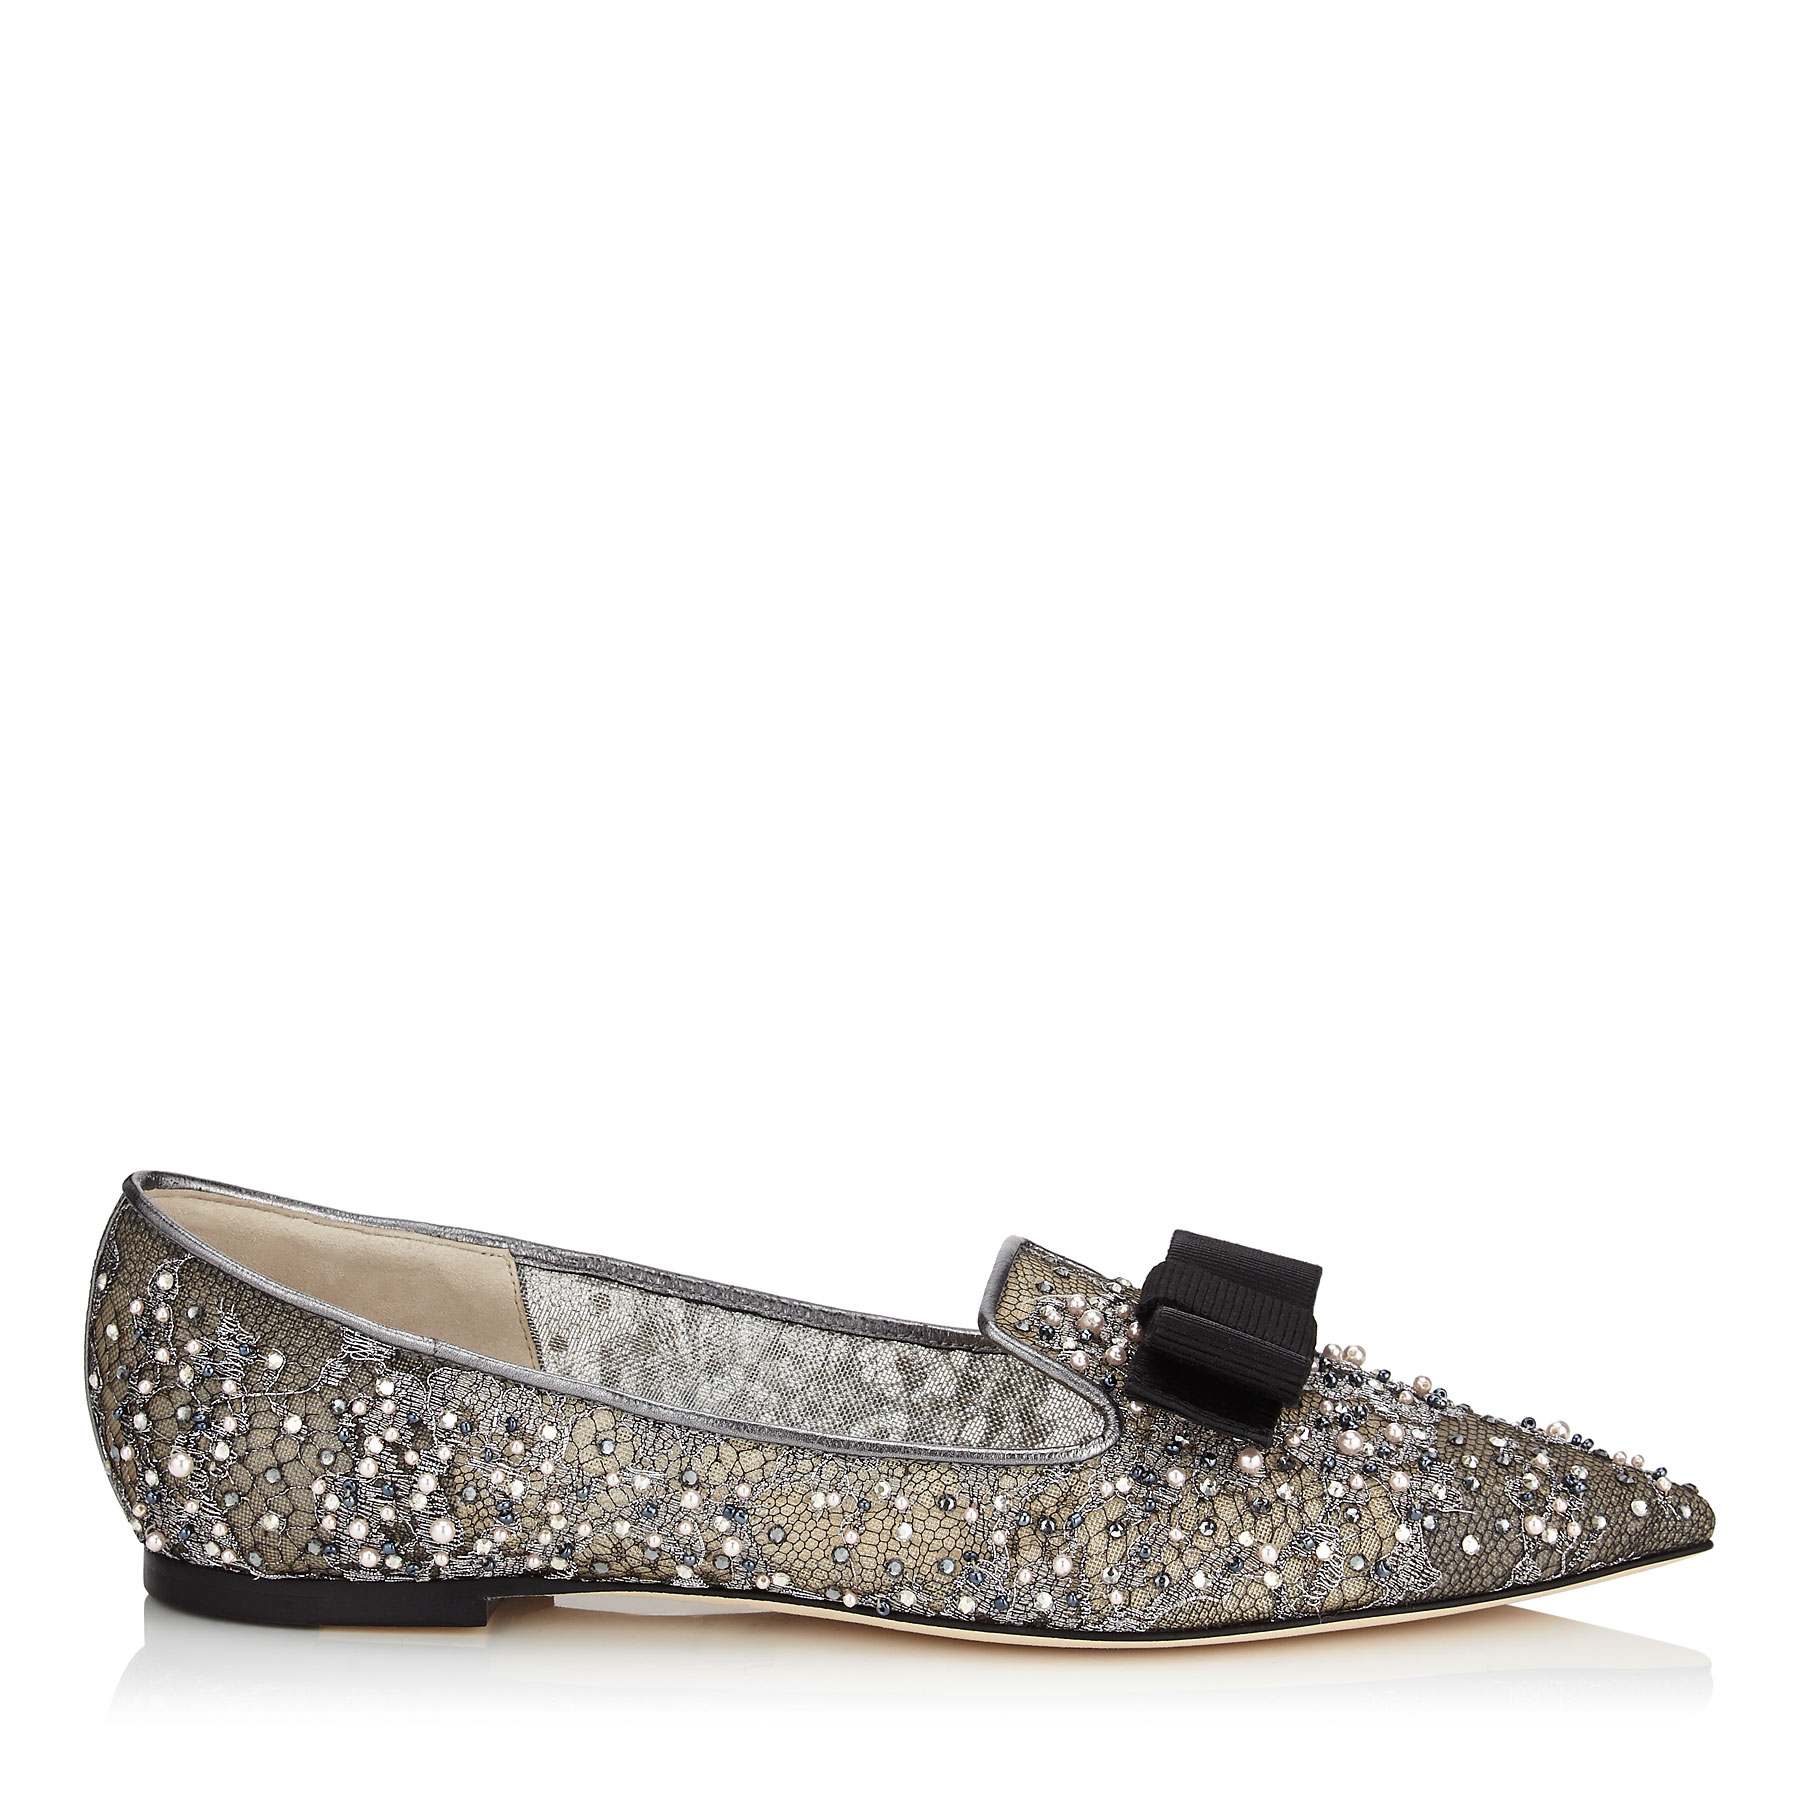 GALA Anthracite Lace Crystal and Pearl Embellished Pointy Toe Flats with Bow Detail